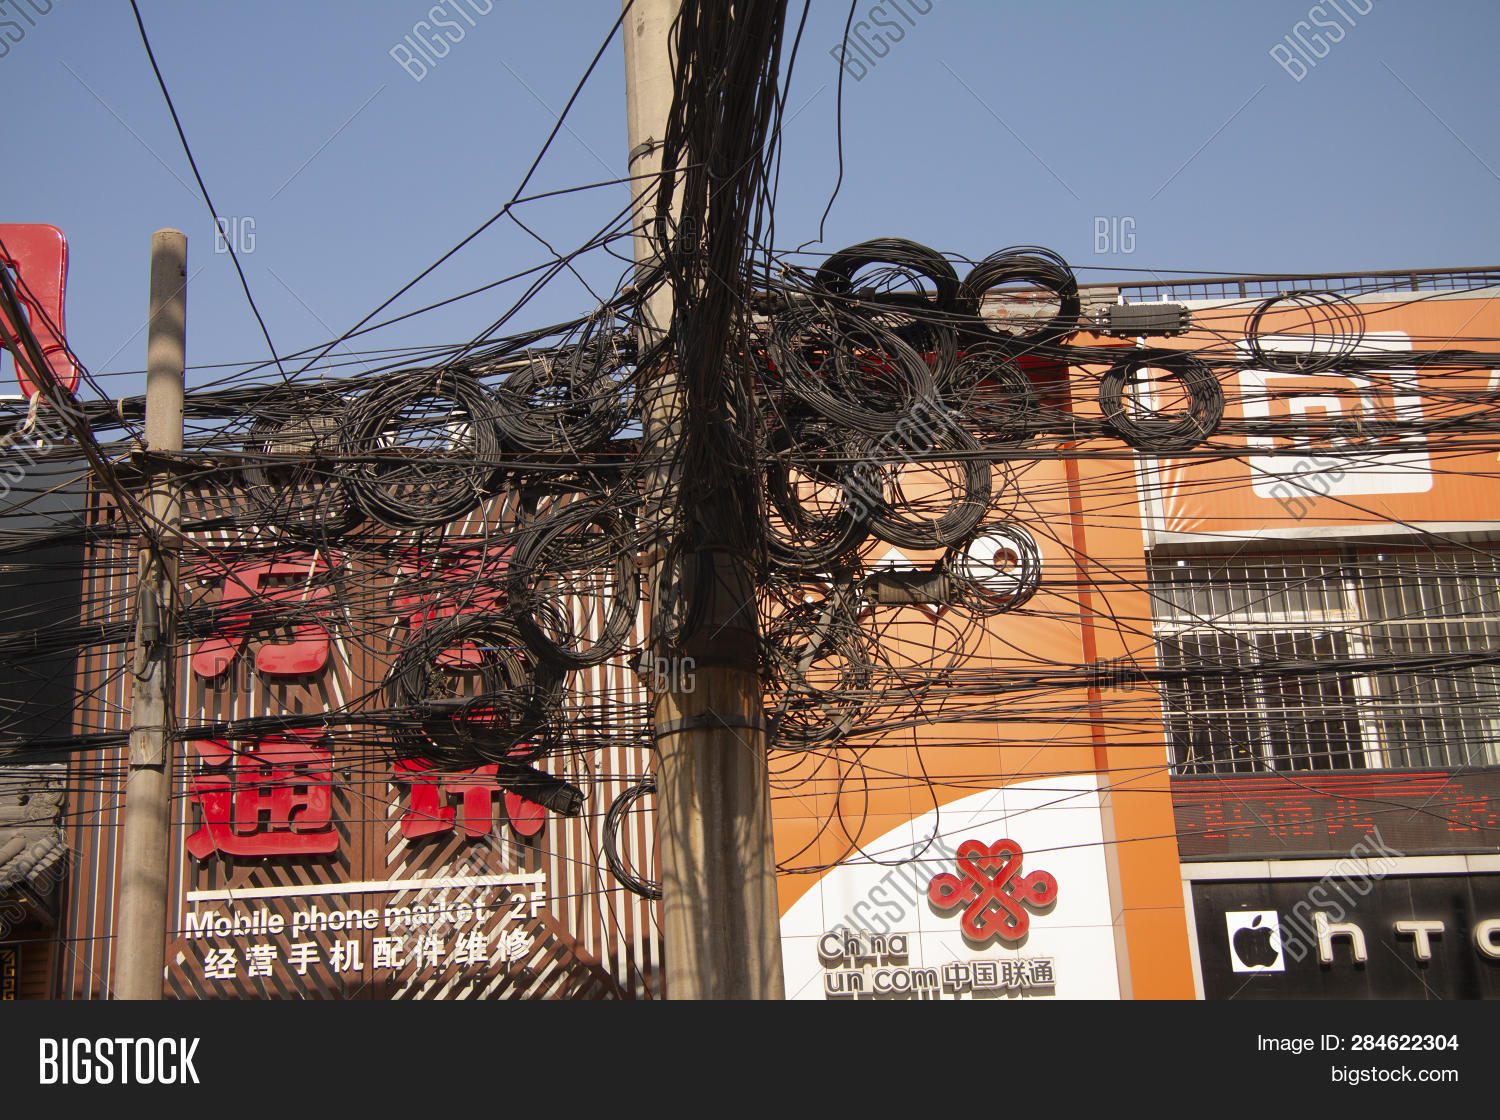 hight resolution of messy tangle of electric and telephone wires on street pole shanghai china december